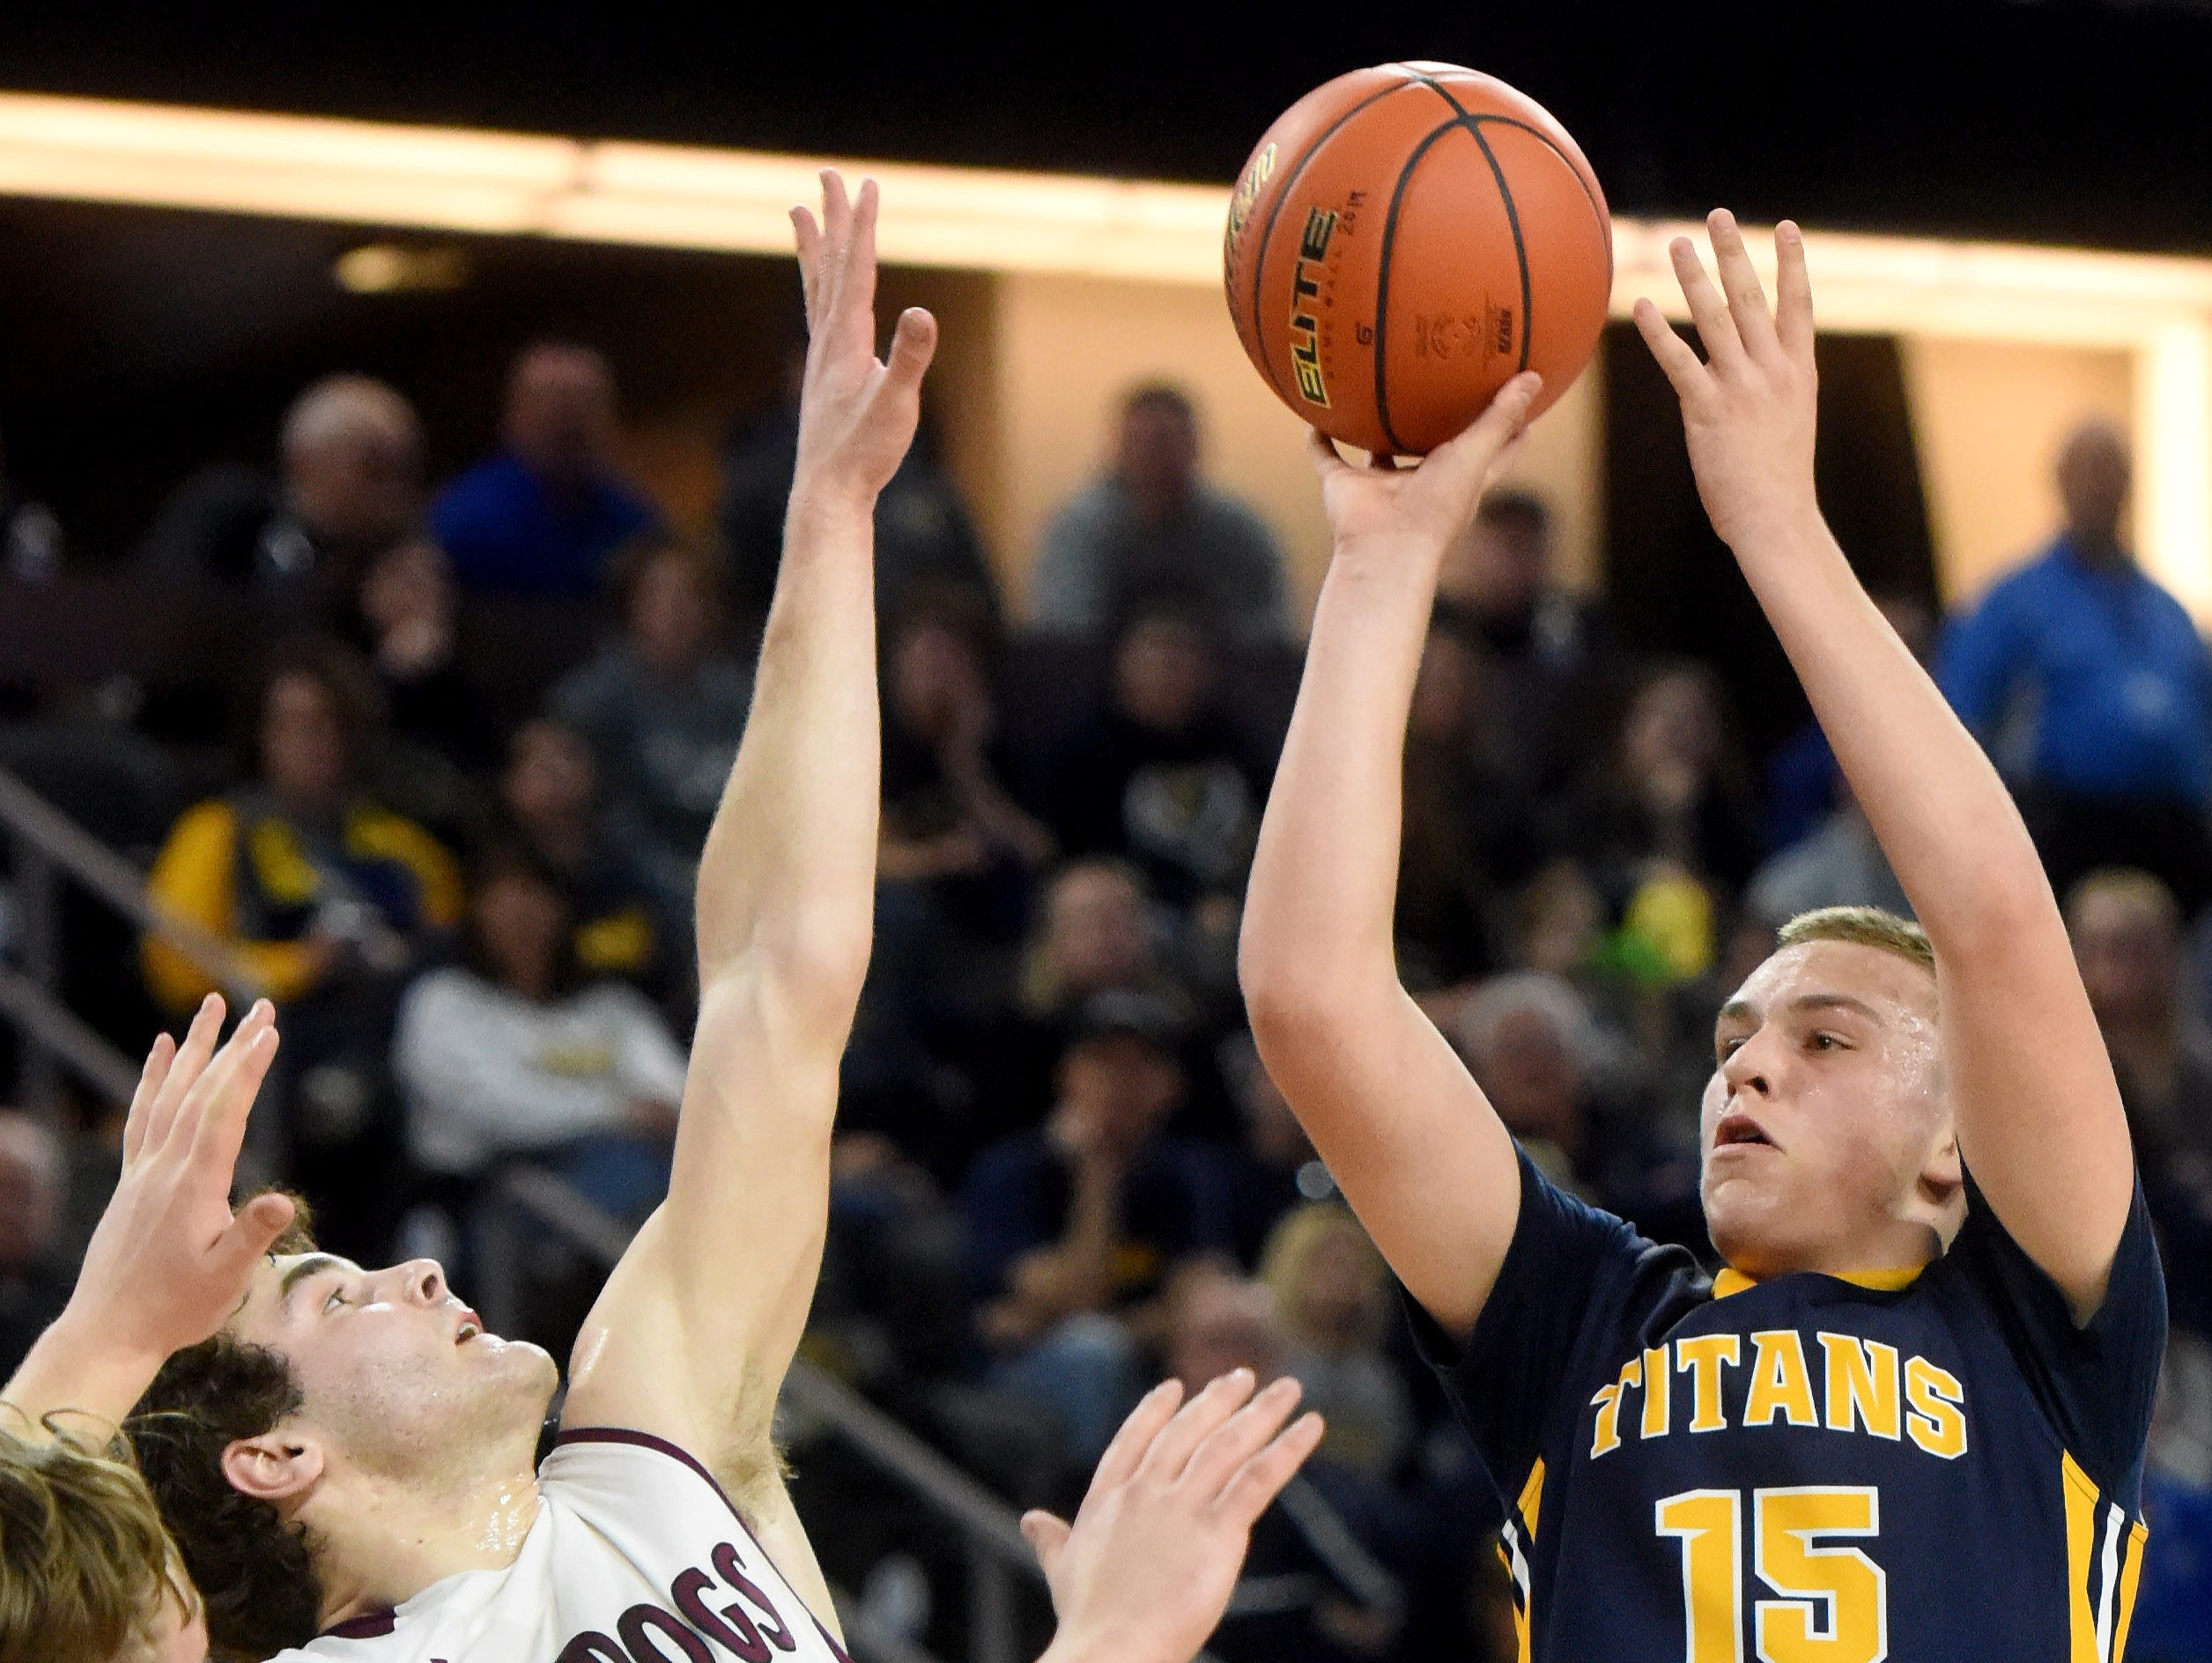 Tea Area's Noah Freidel shoots over Madison's Marcus VandenBosch during the 2017 SDHSAA Class A boy's basketball championship at the Denny Sanford Premier Center on Saturday, March 18, 2017.